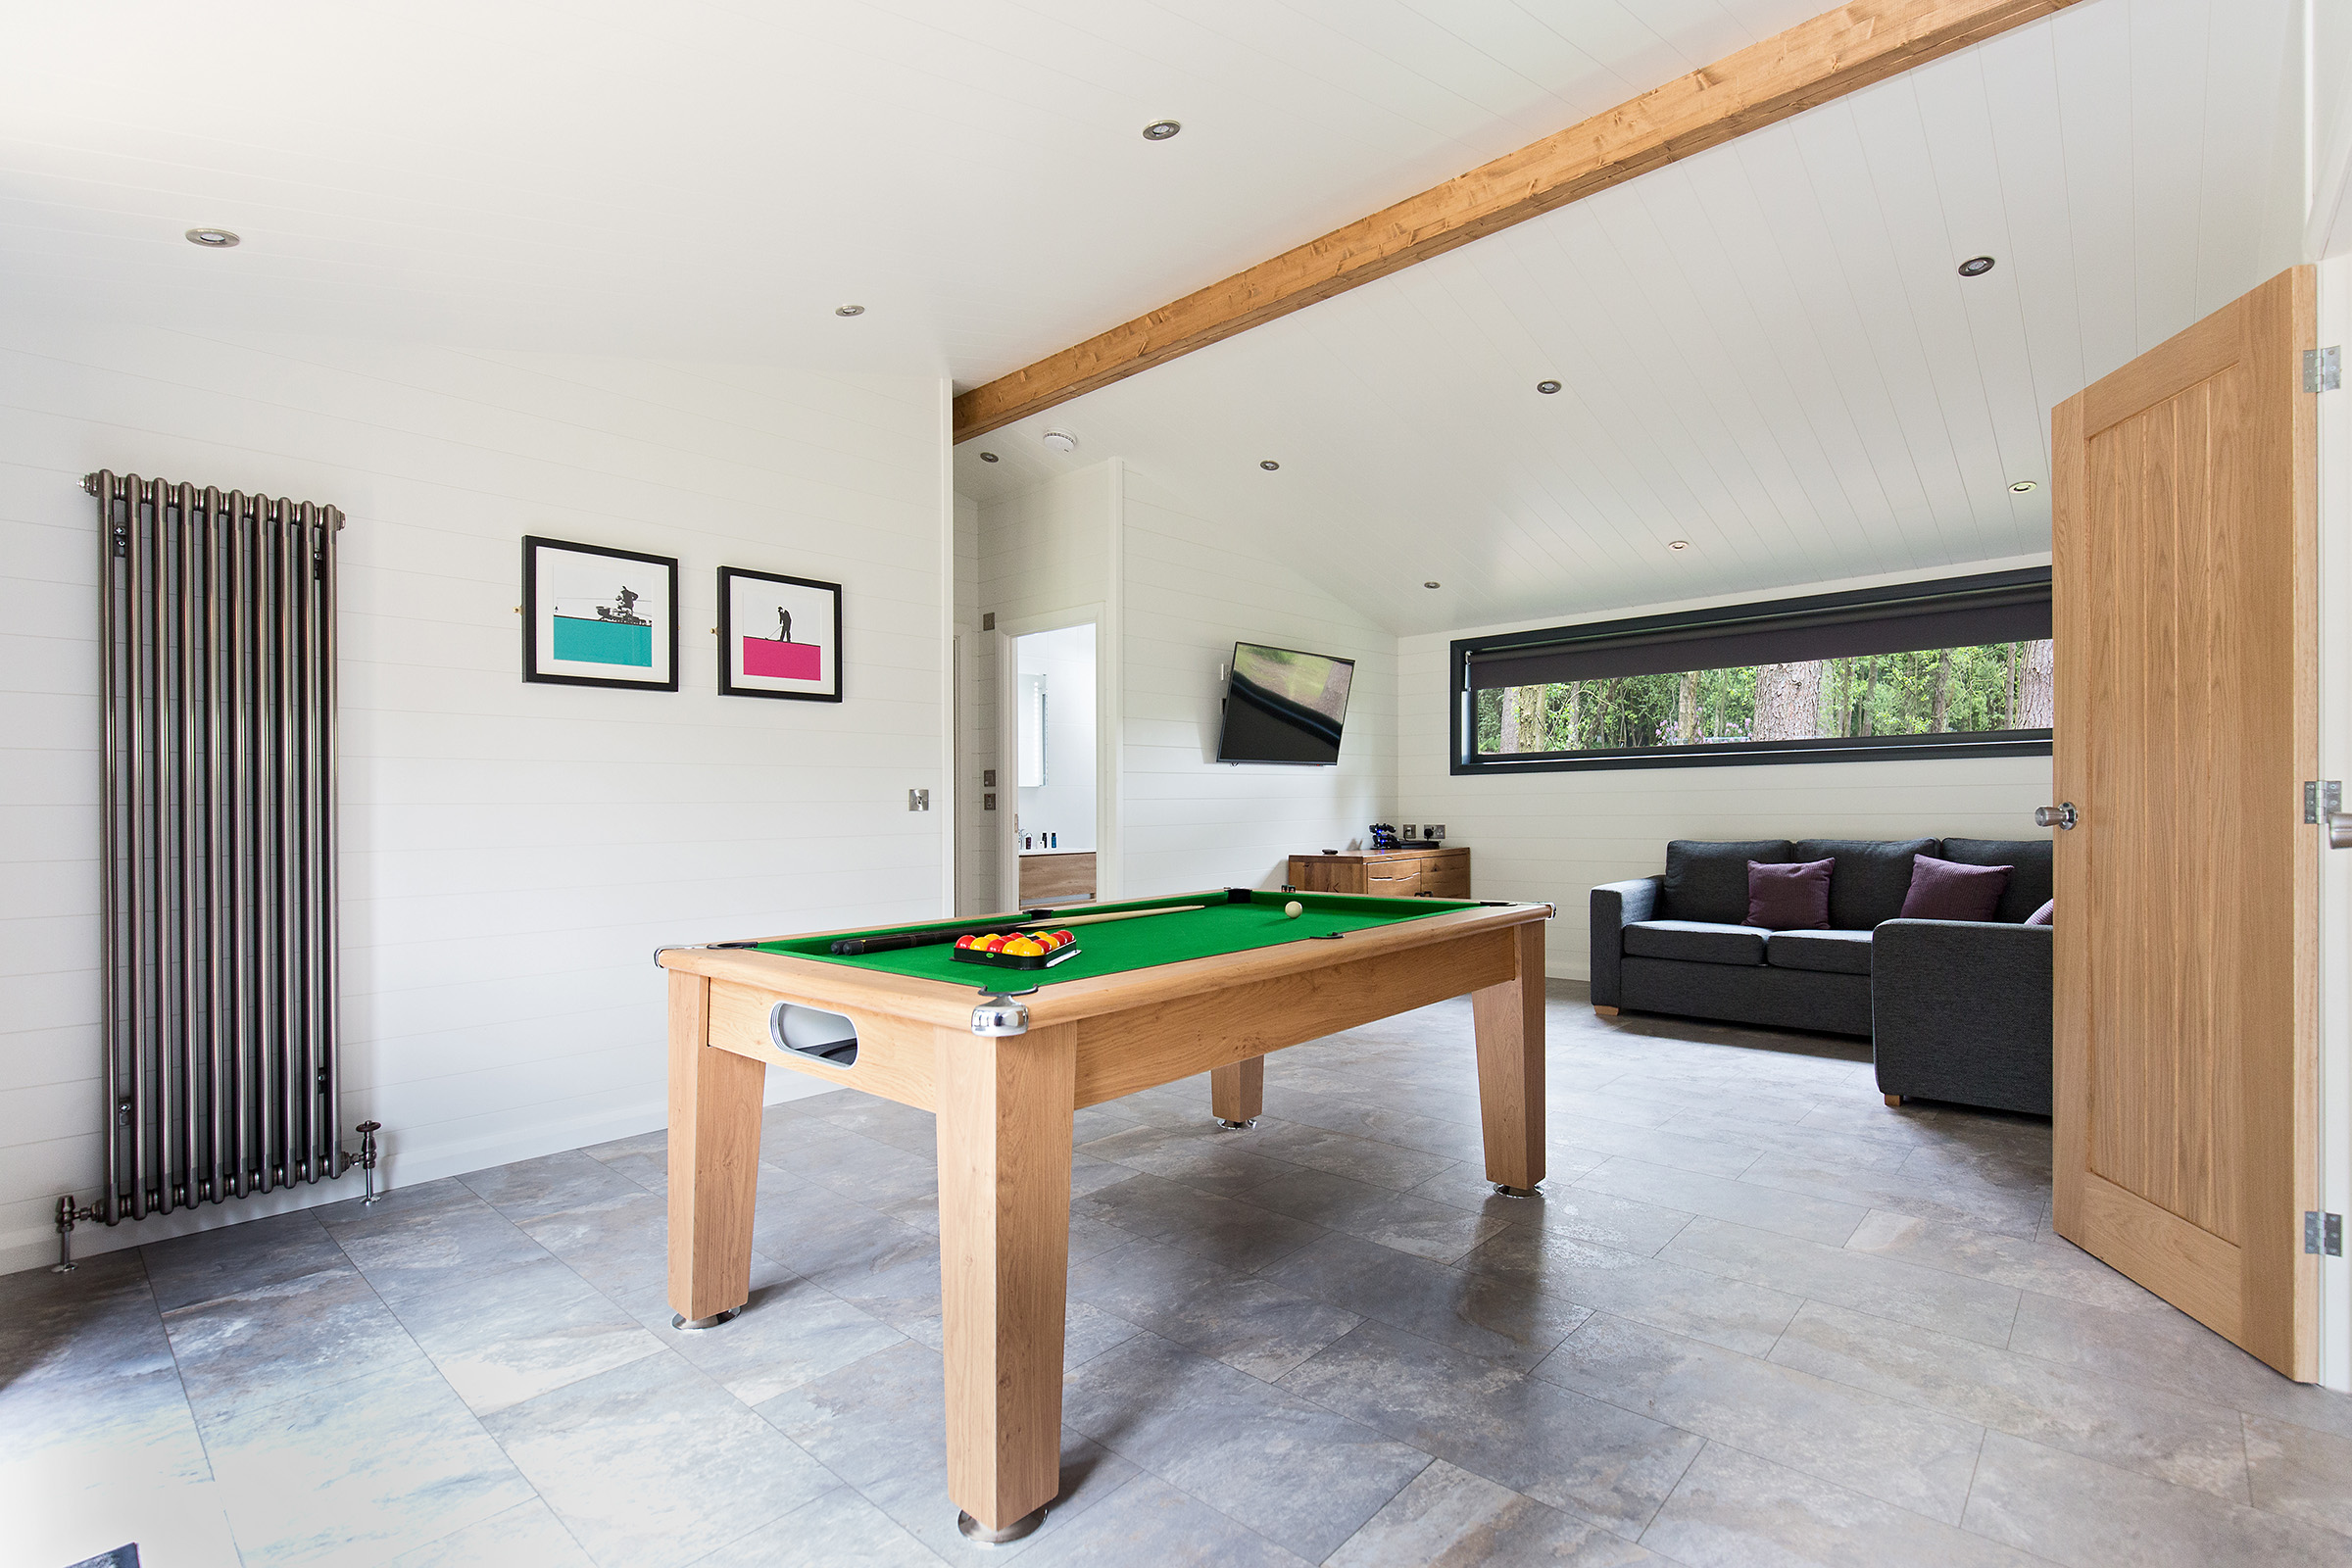 The Glade Timber Lodge — Games room with pool table